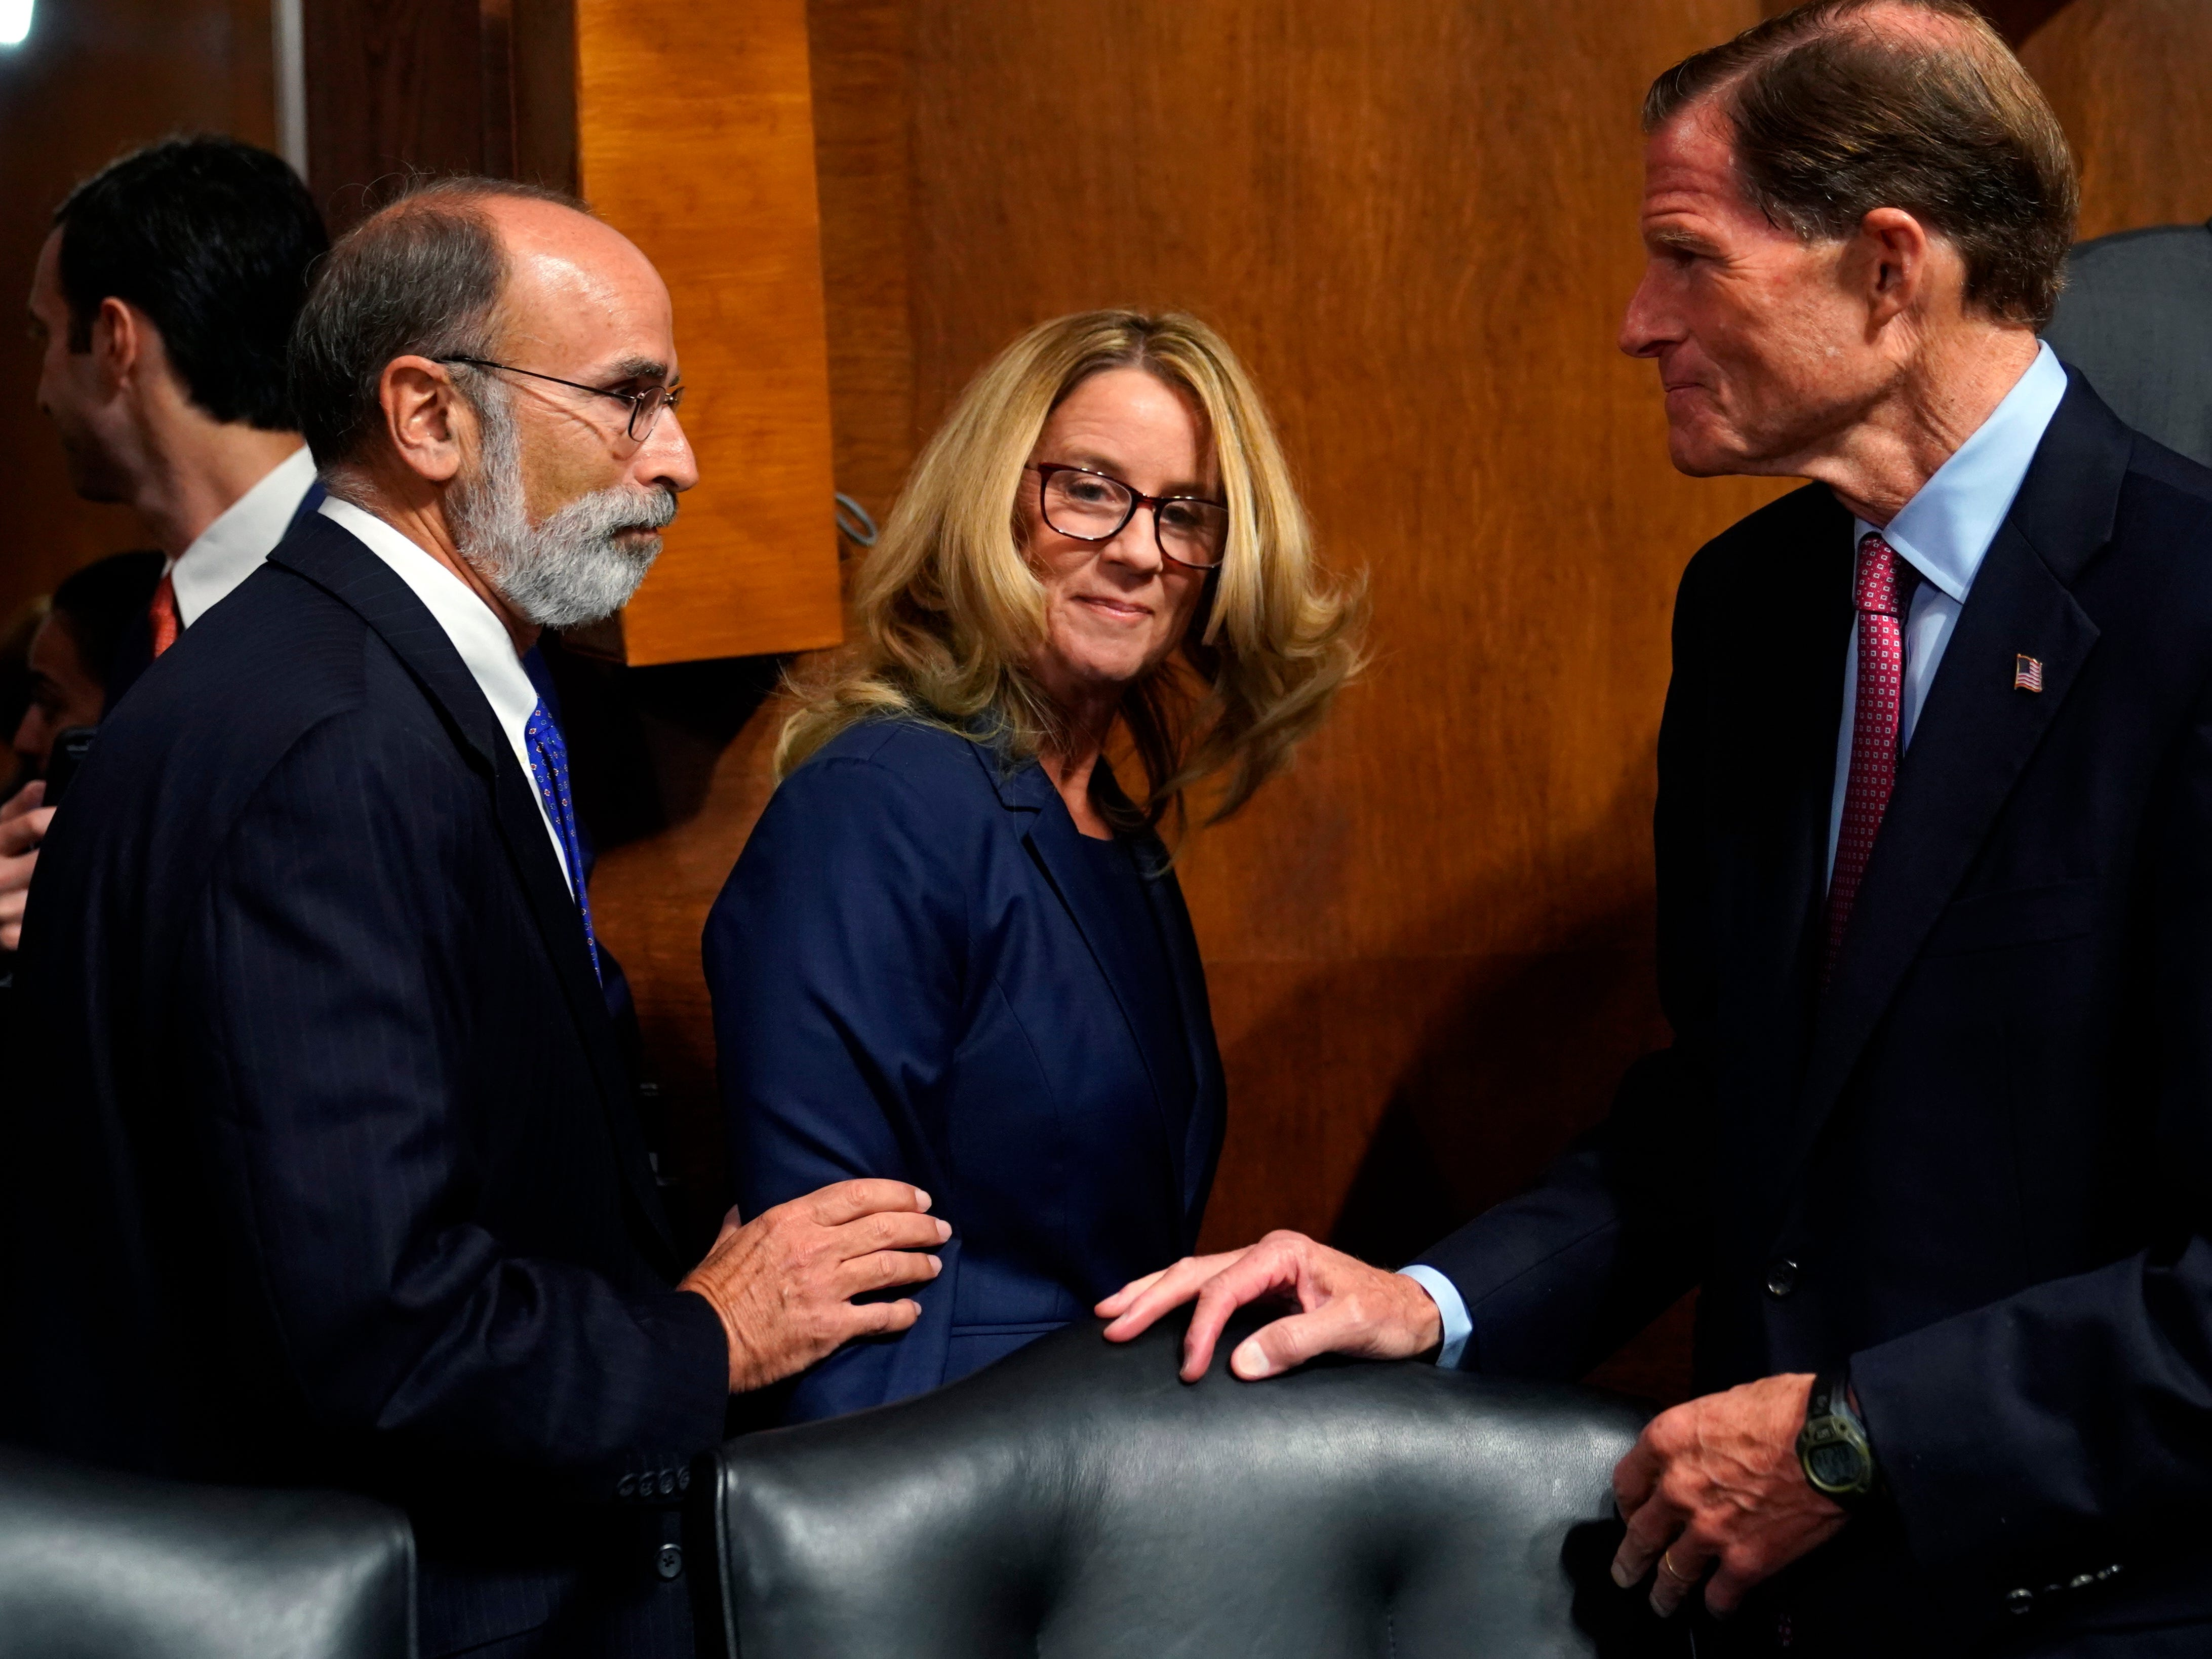 Christine Blasey Ford arrives prior to the Senate Judiciary Committee hearing.